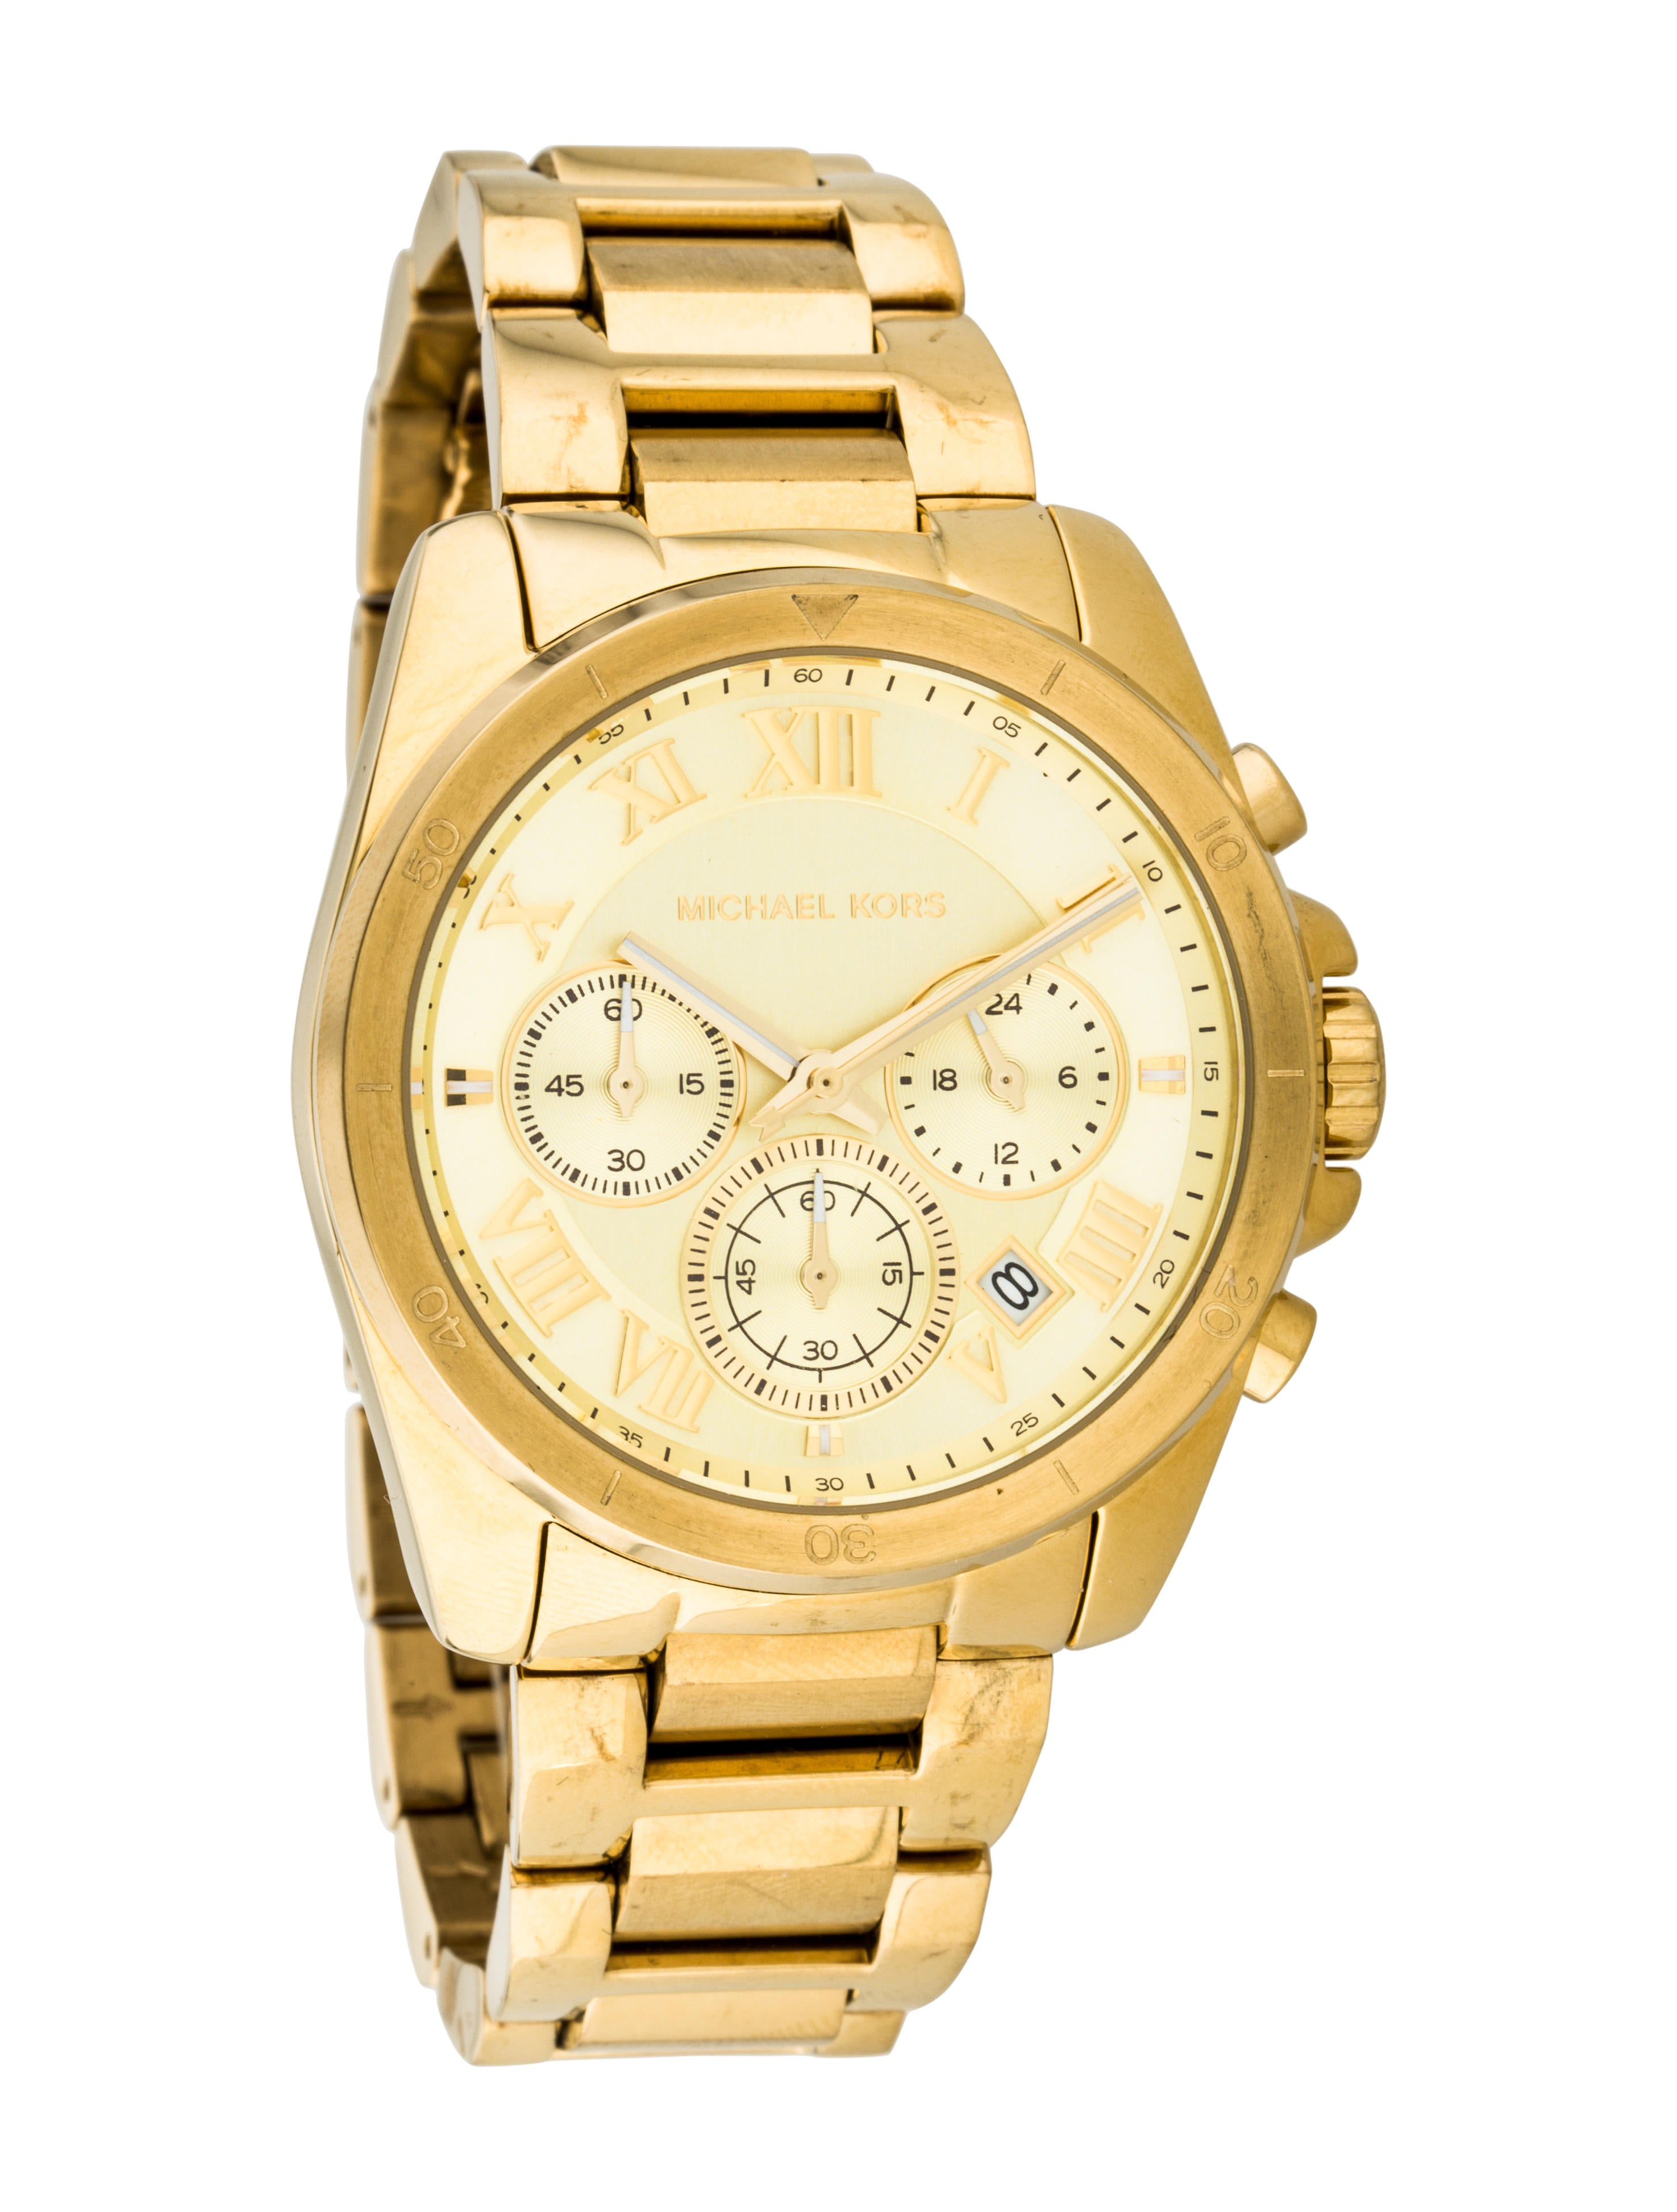 Michael Kors Brecken Watch Bracelet MIC58039 | The RealReal